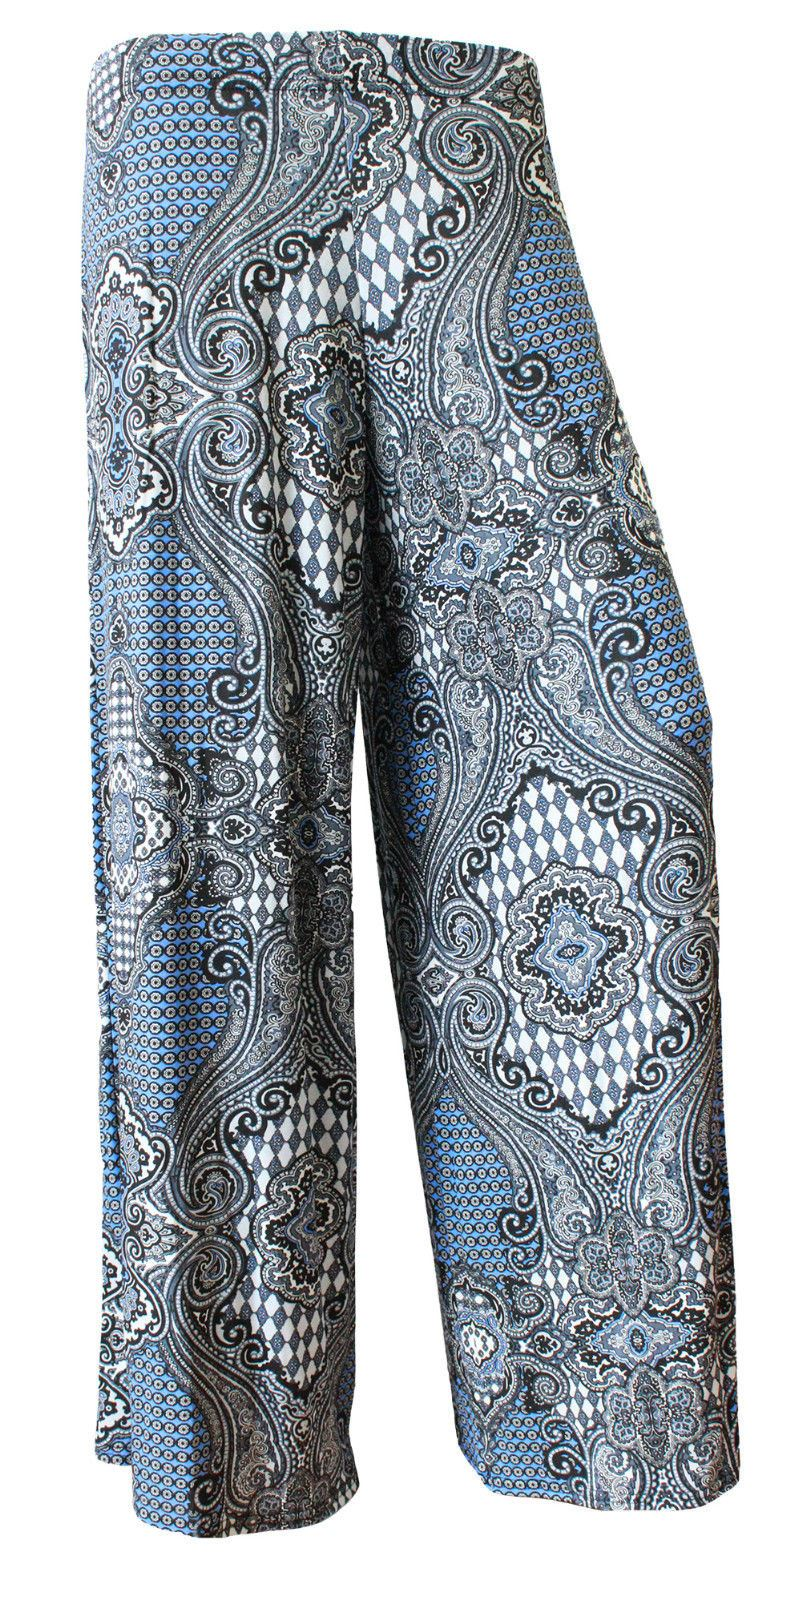 Find great deals on eBay for Printed Wide Leg Pants in Women's Pants, Clothing, Shoes and Accessories. Shop with confidence.